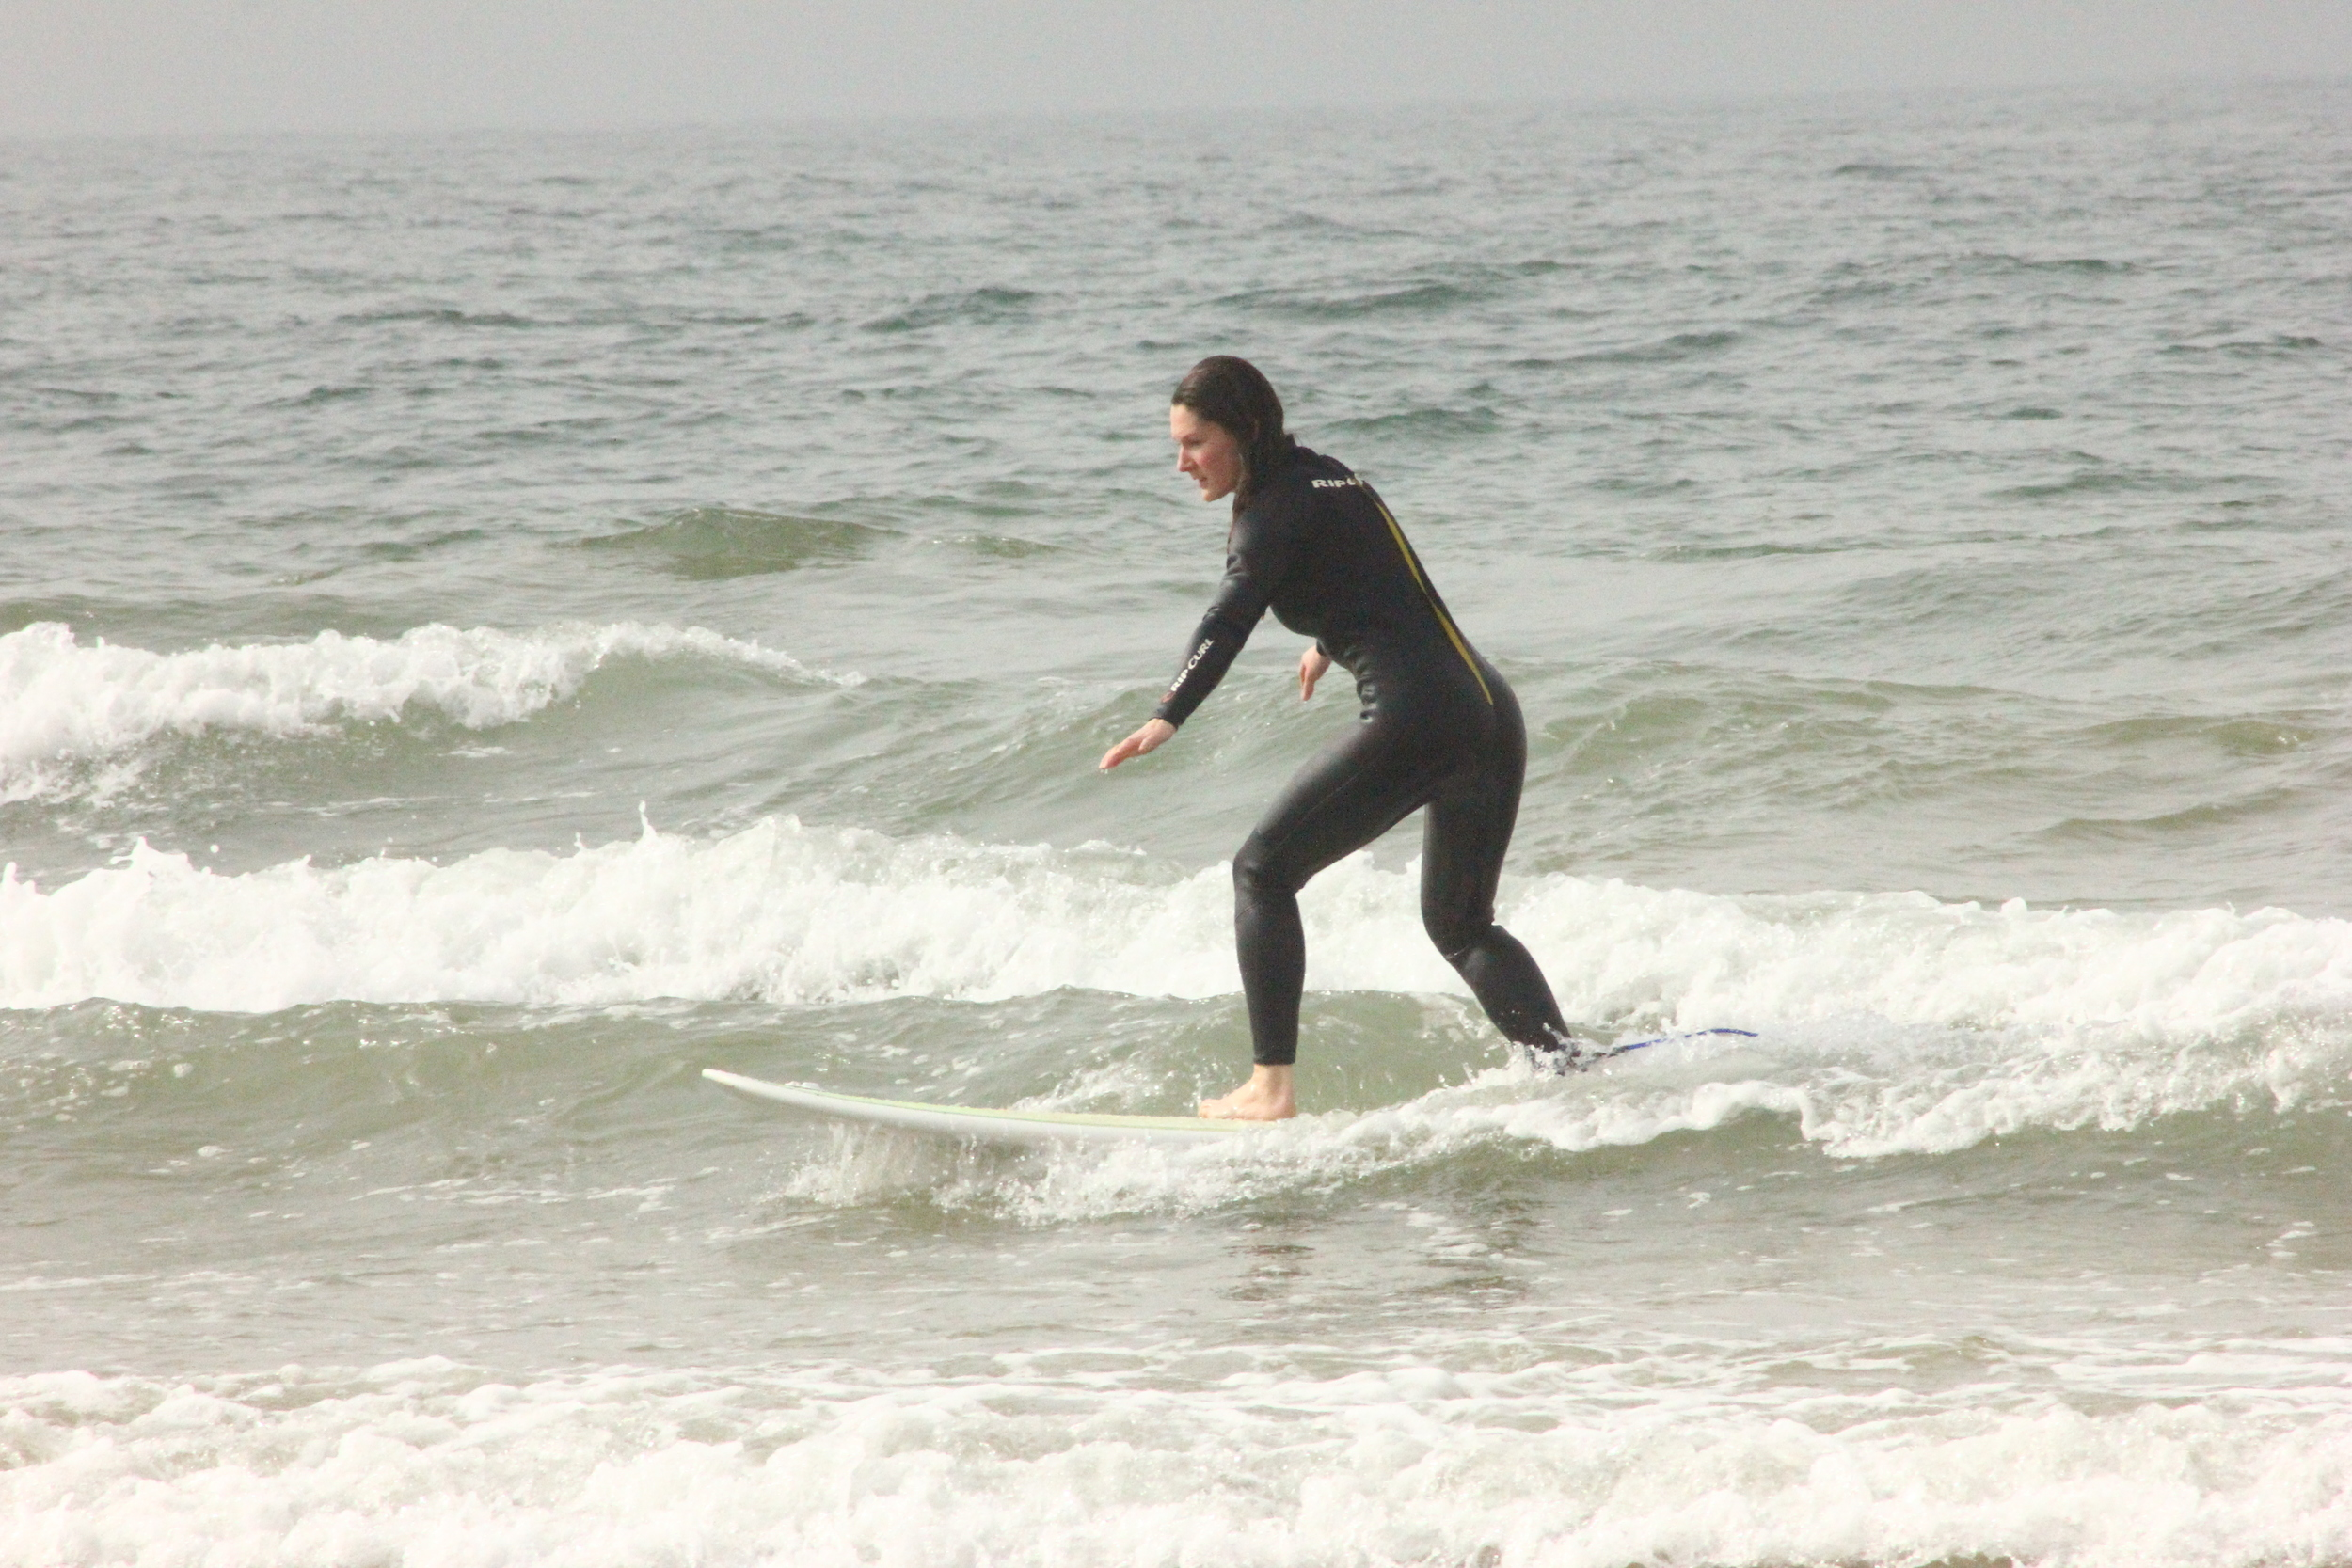 Ellie on a baby wave